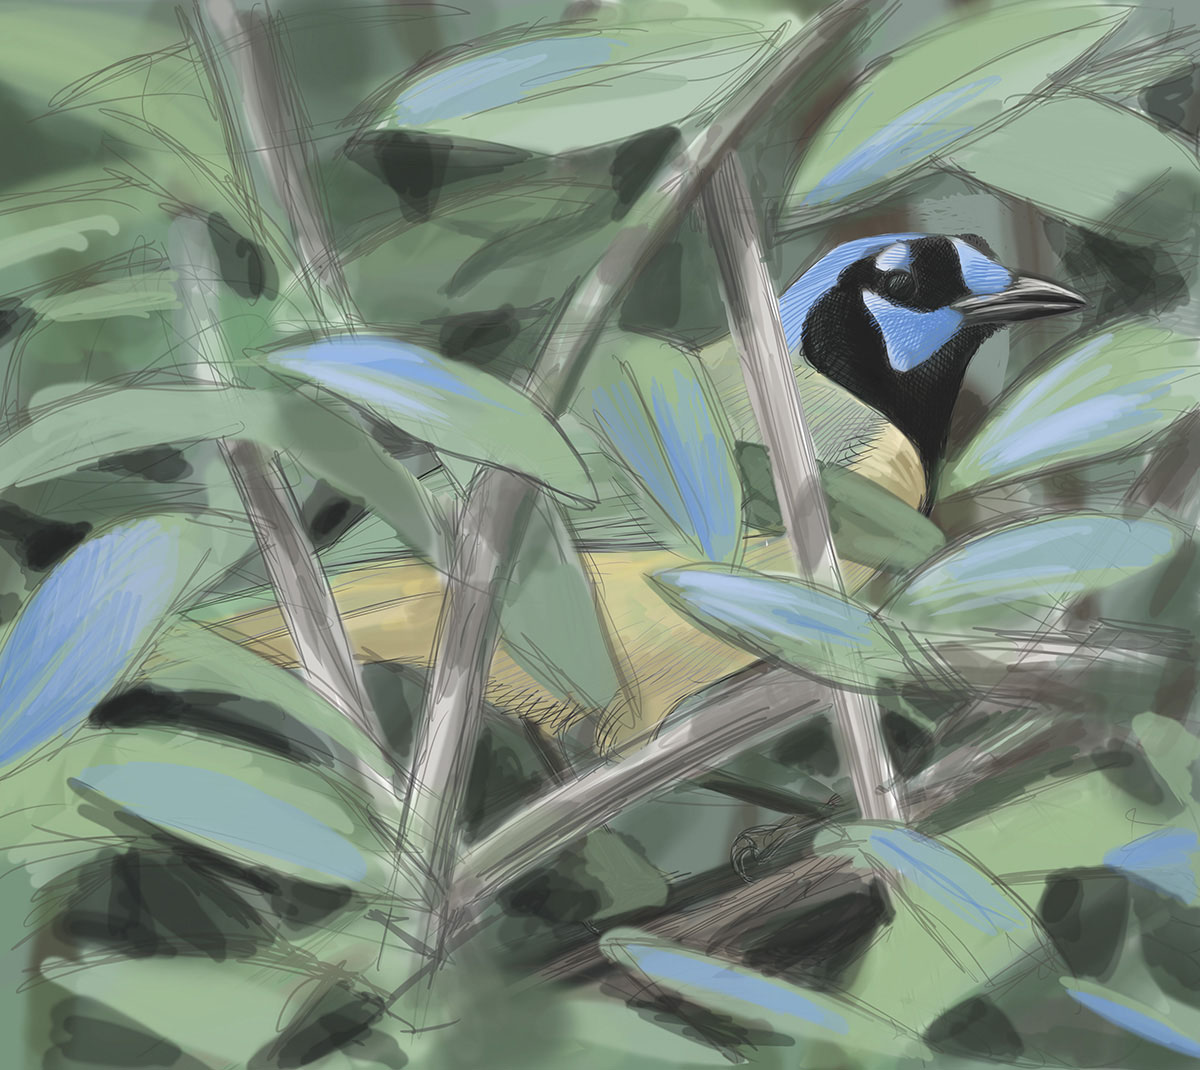 A GLIMPSE: Tropical birds such as a Green Jay skulking in vegetation can be surprisingly hard to see. Art by David Sibley